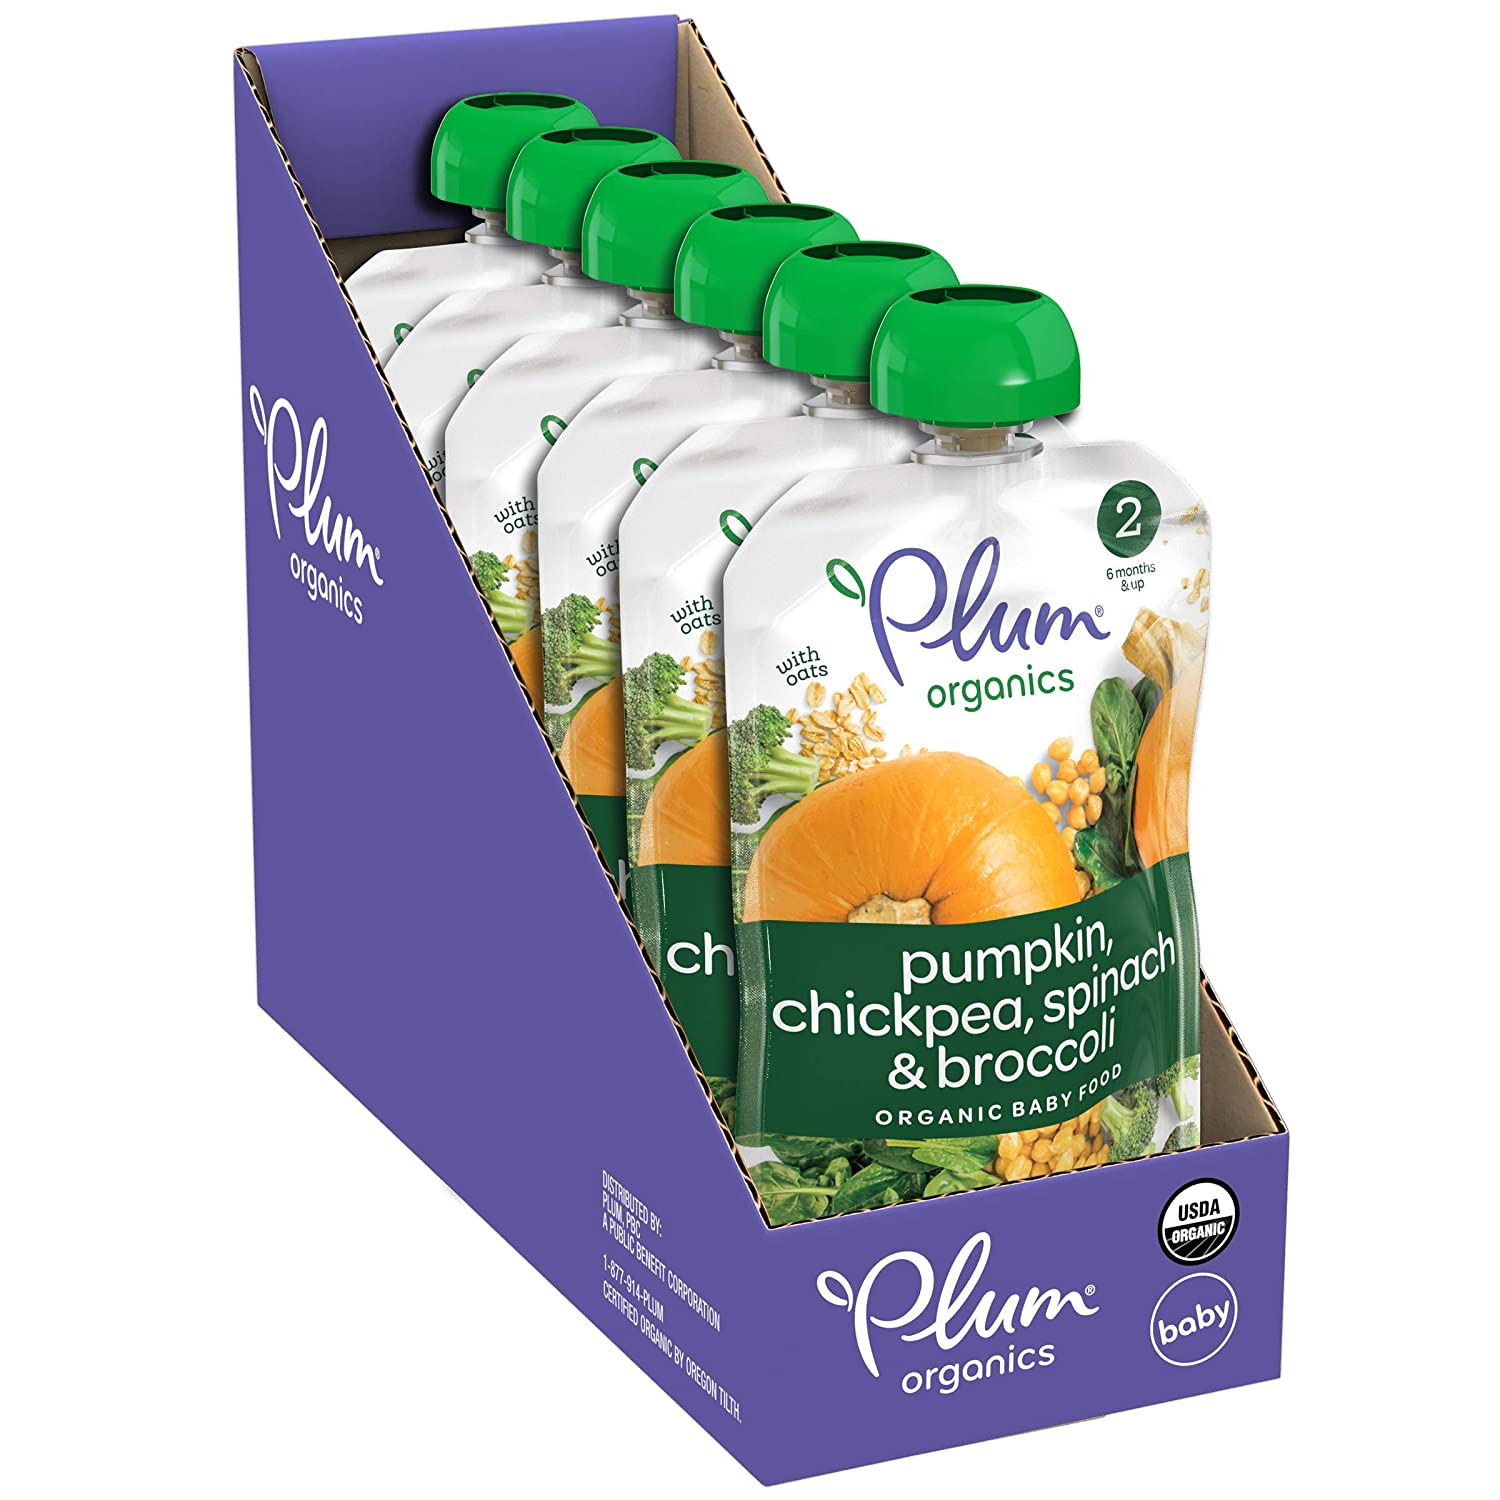 Plum Organics Stage 2 Organic Baby Food, Pumpkin, Spinach, Chickpea & Broccoli, 3.5 Ounce Pouch (Pack of 6)